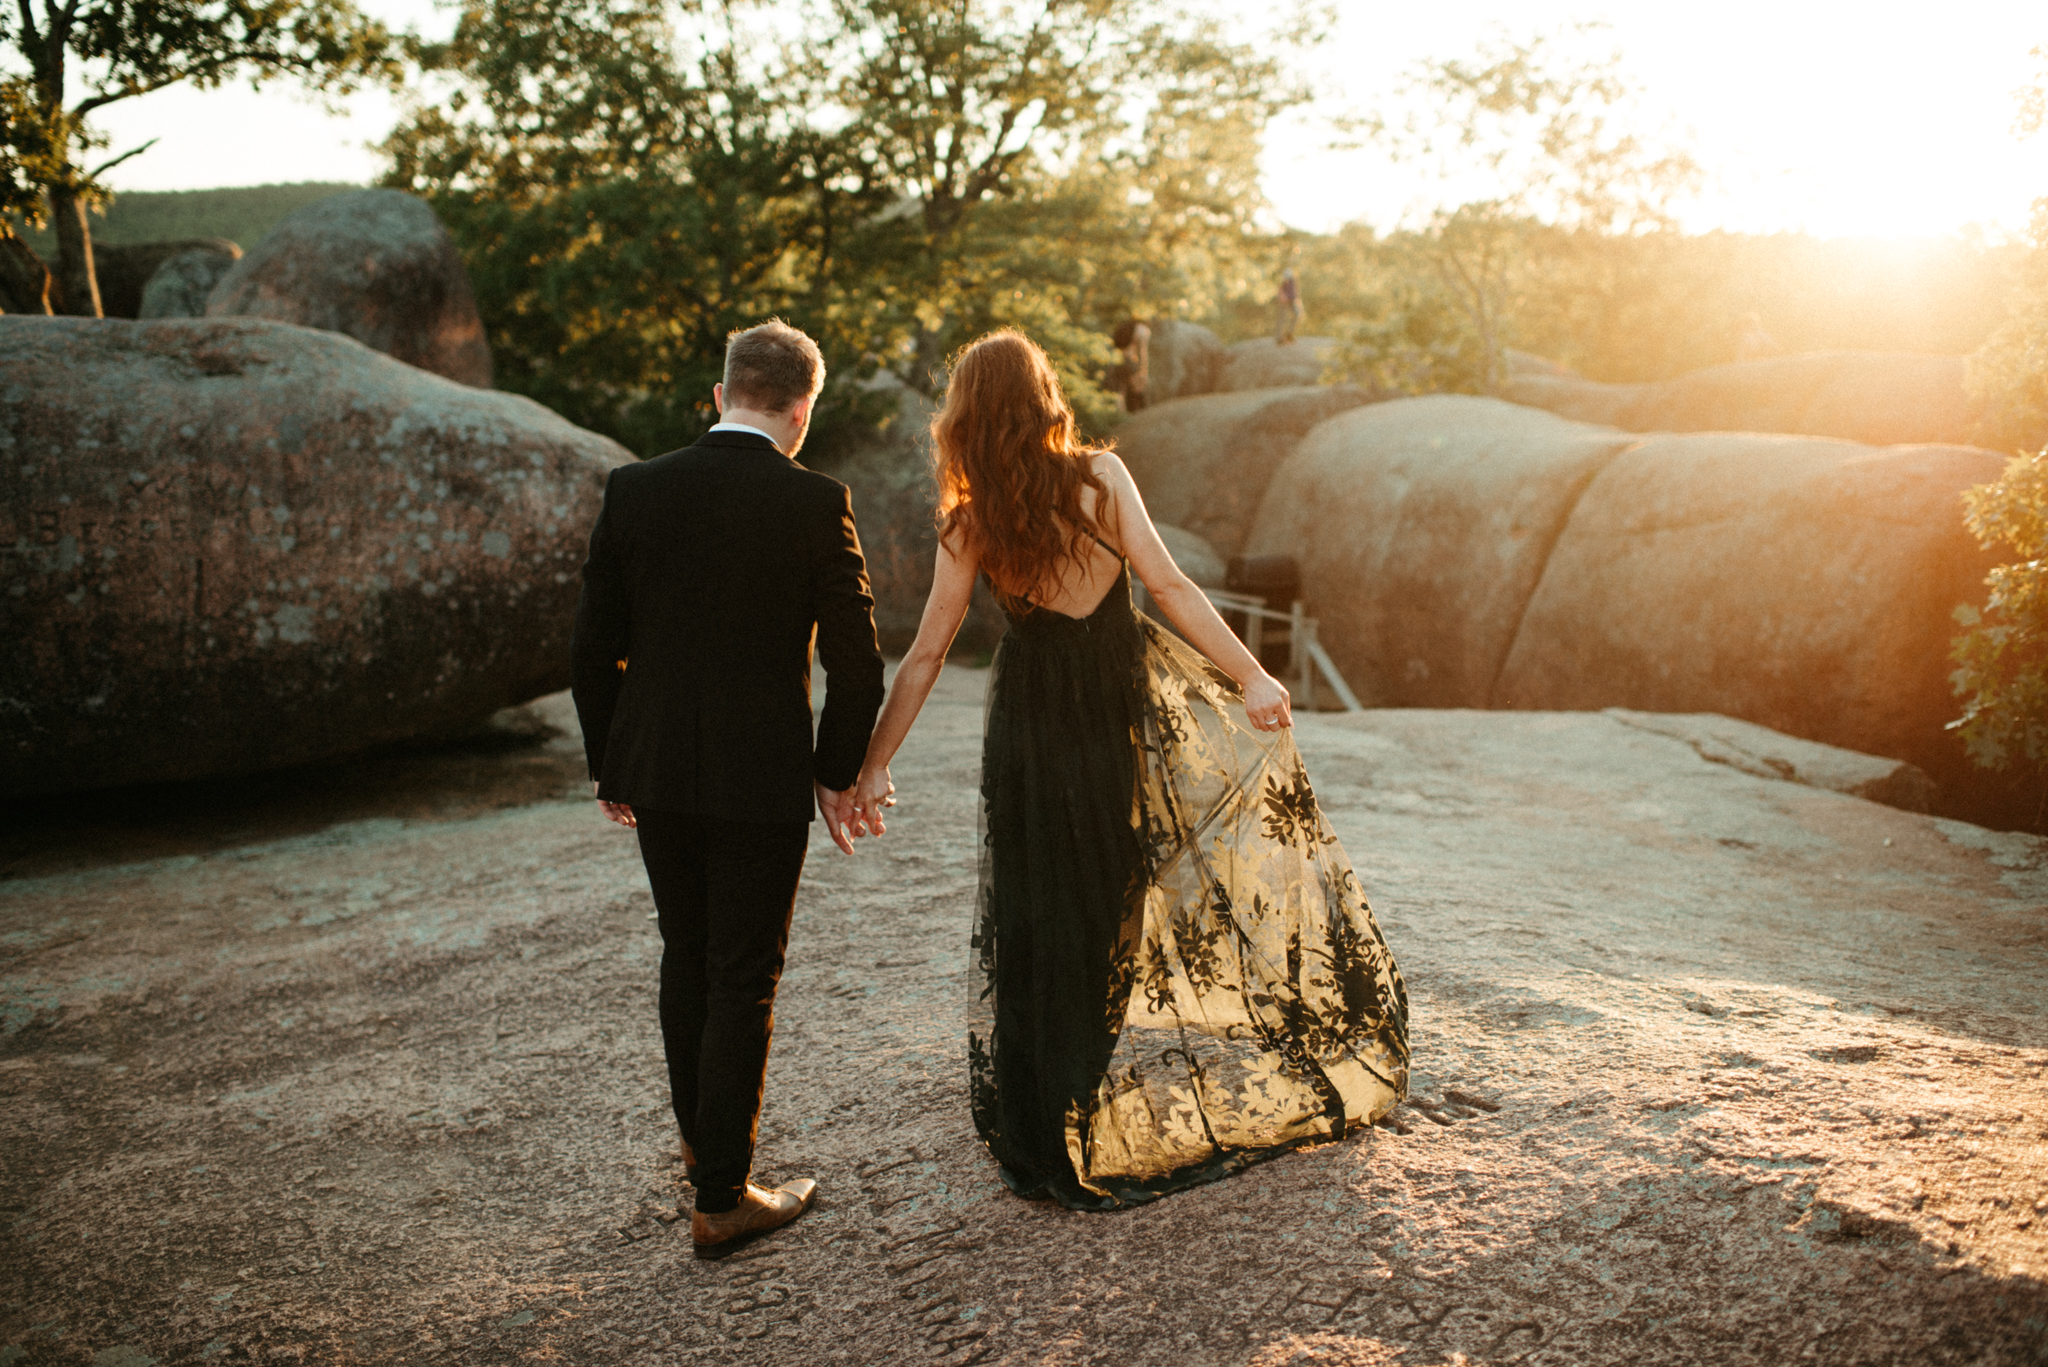 Zach and Rosalie - Missouri Wedding Photographer - Elephant rocks state park anniversary session -7217.jpg